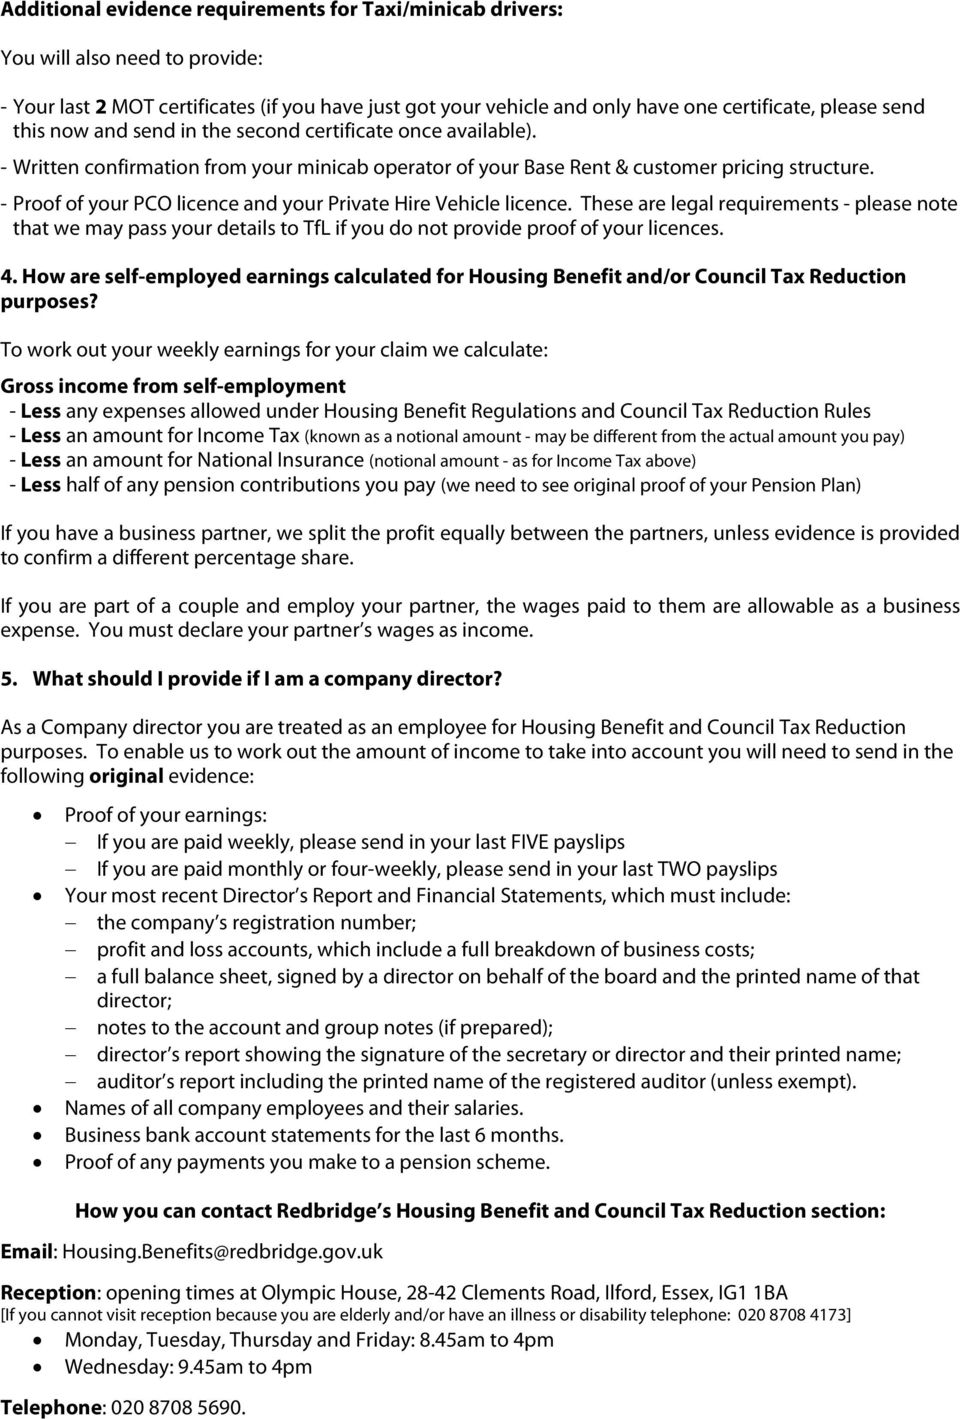 housing benefit and council tax reduction: self-employed earnings